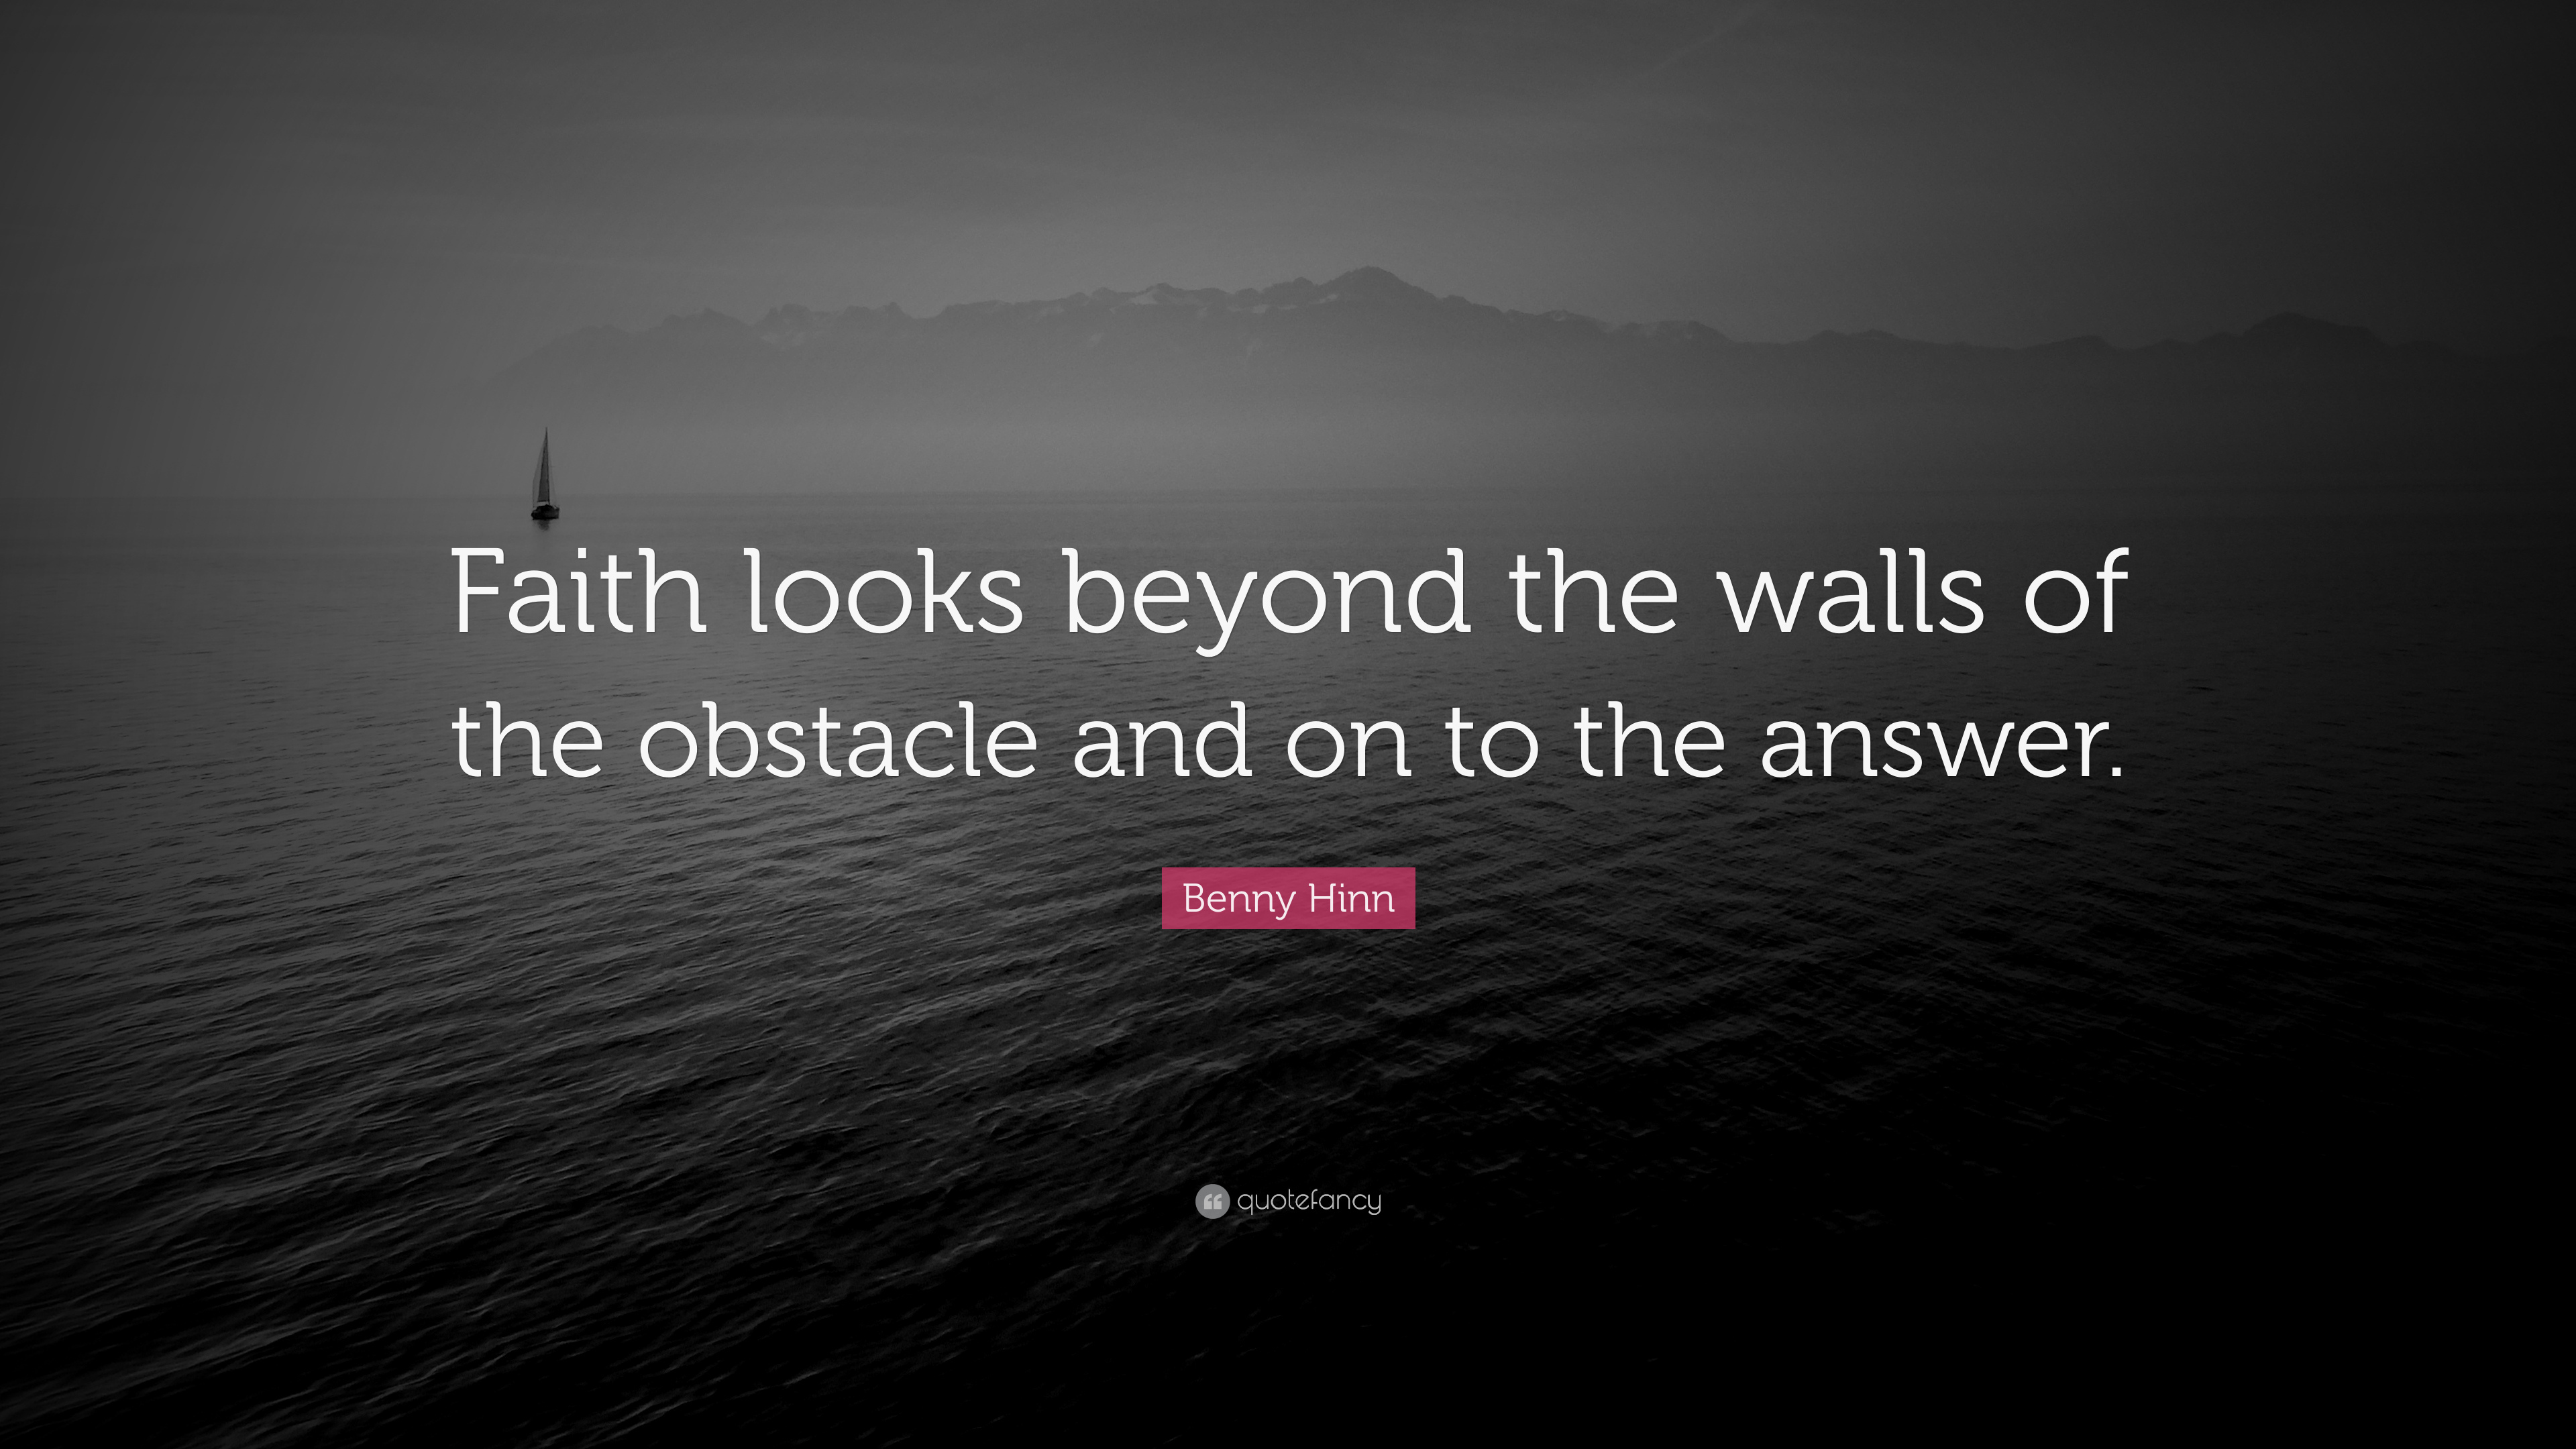 Benny Hinn Quote Faith Looks Beyond The Walls Of The Obstacle And